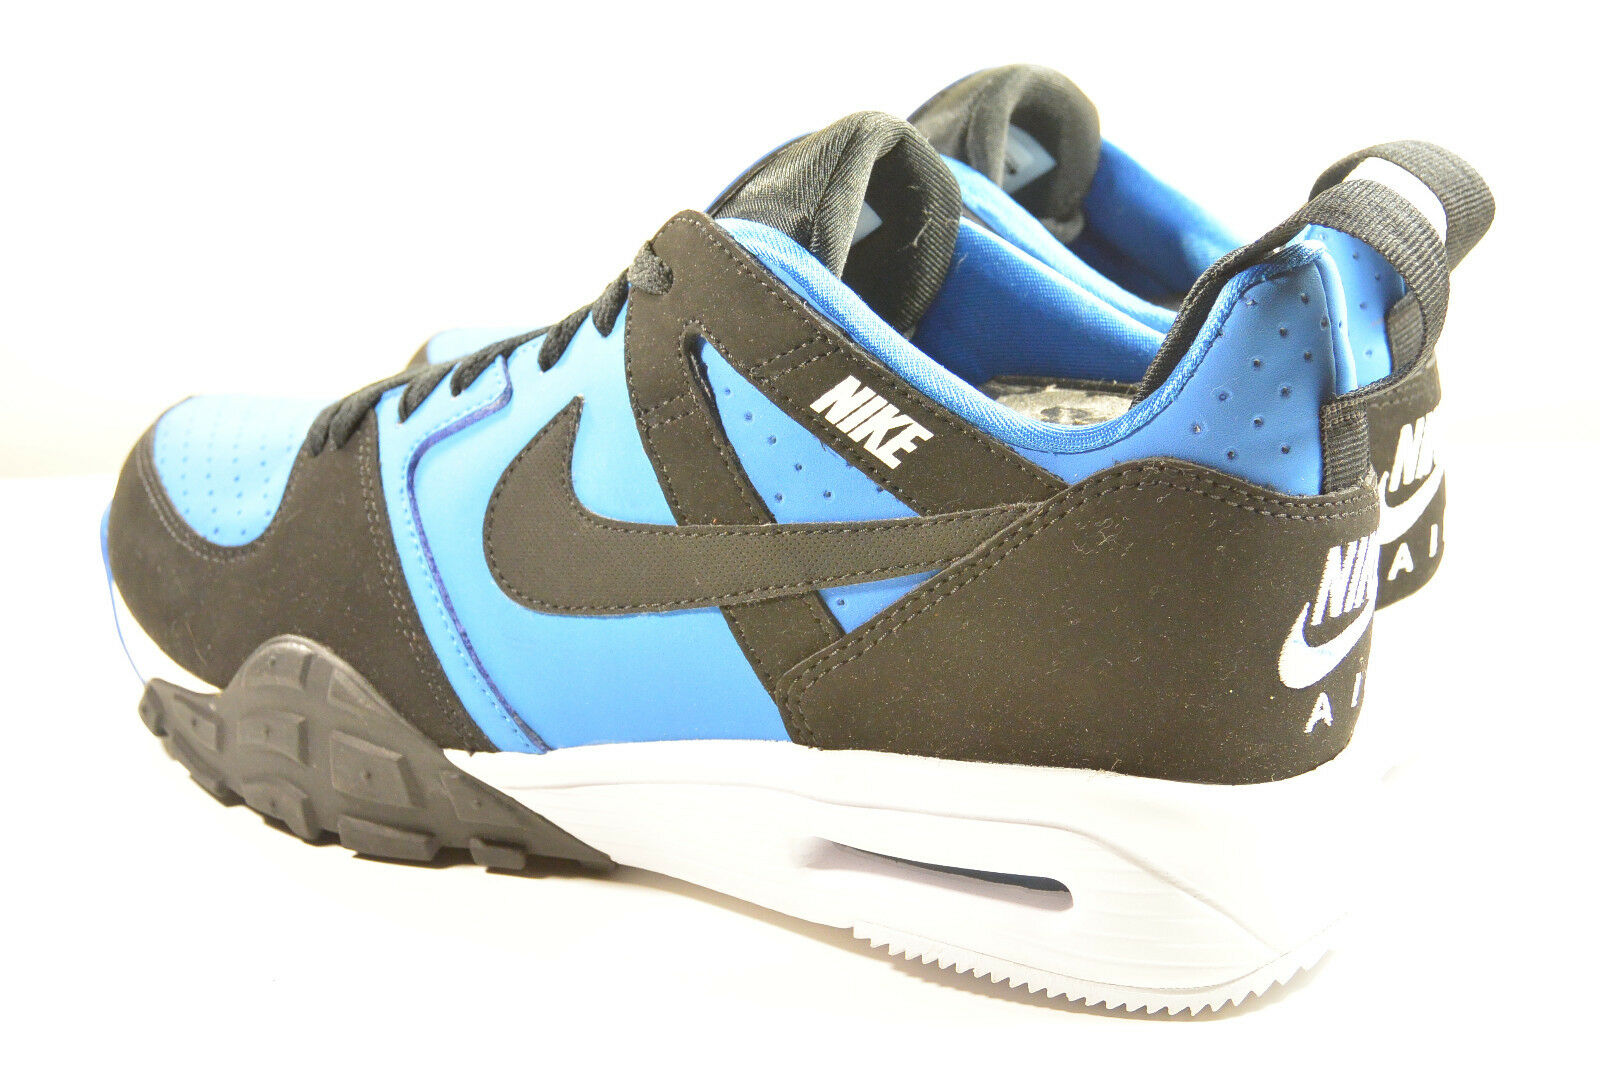 5e3463c3aa98 DS DS DS NIKE 2013 AIR TRAINER 91 LITE UNRELEASED SAMPLE BLUE 9 NFL SUPER  BOWL SC 1 513305